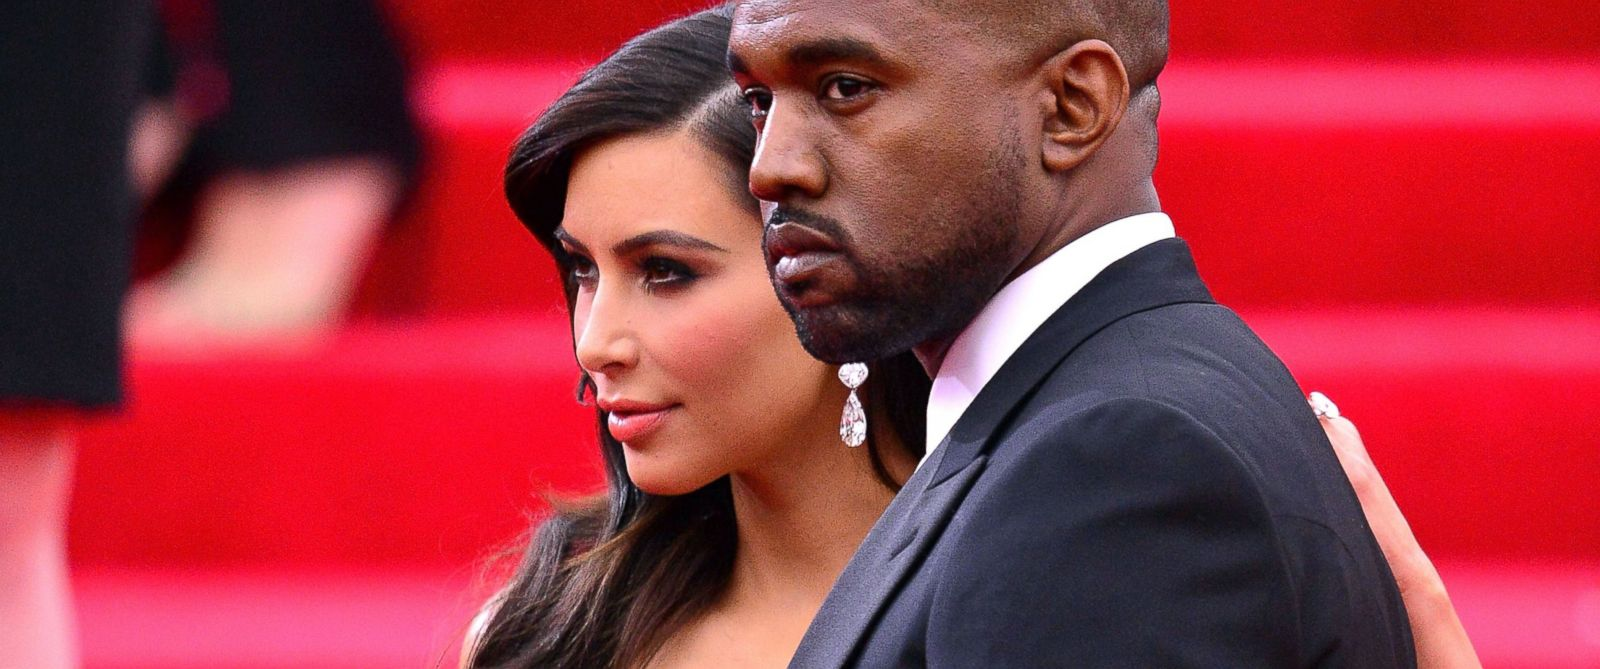 """PHOTO: Kim Kardashian and Kanye West attend the """"Charles James: Beyond Fashion"""" Costume Institute Gala, May 5, 2014 in New York City."""